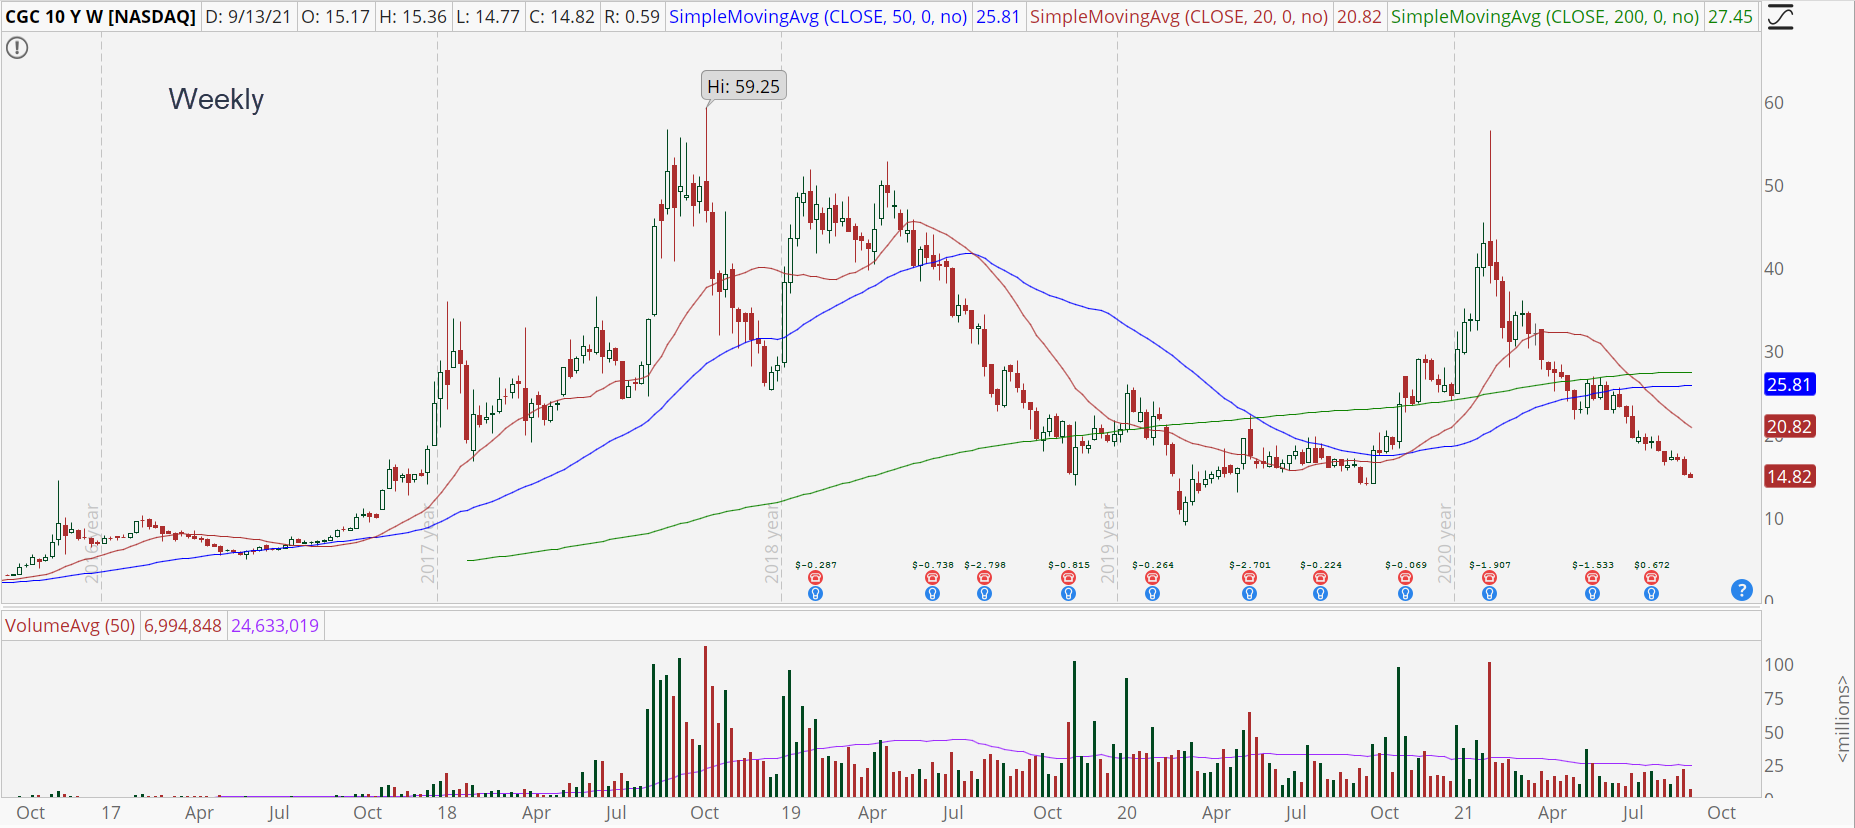 Canopy Growth Corp (CGC) weekly chart with incredible volatility